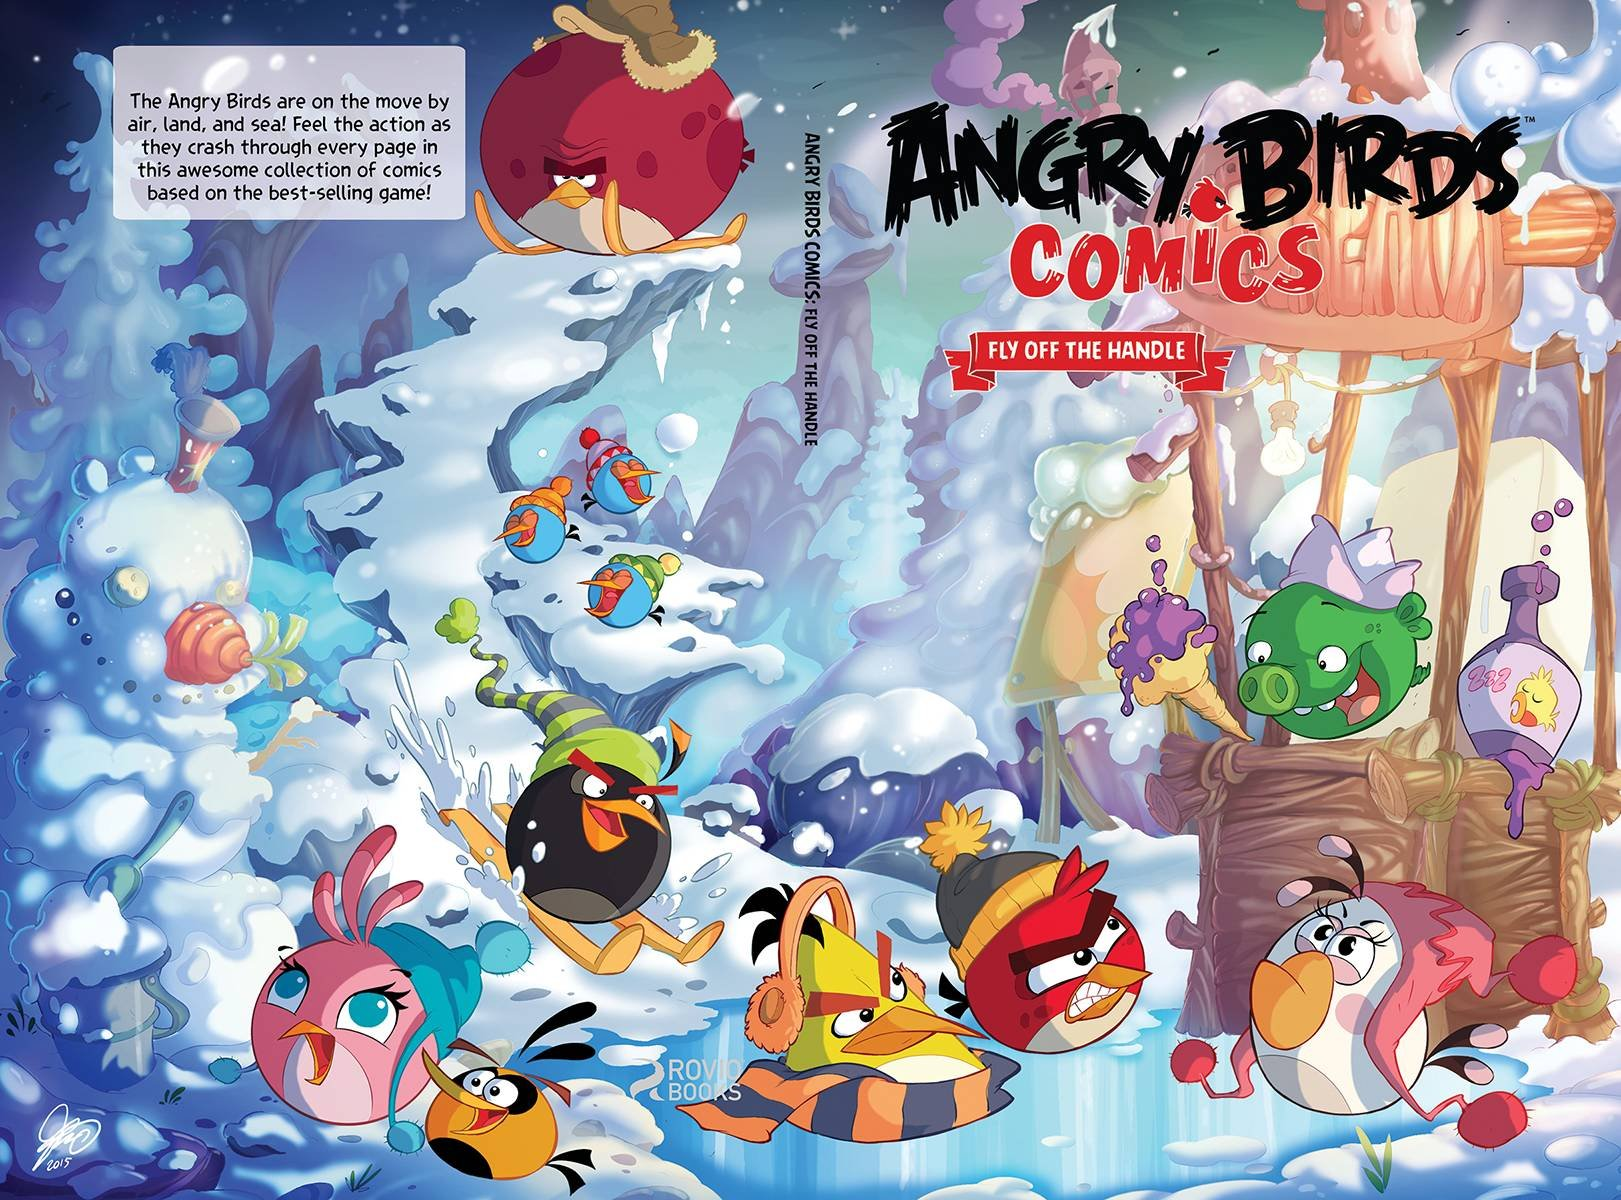 Angry Birds Comics v04 - Fly Off the Handle HC